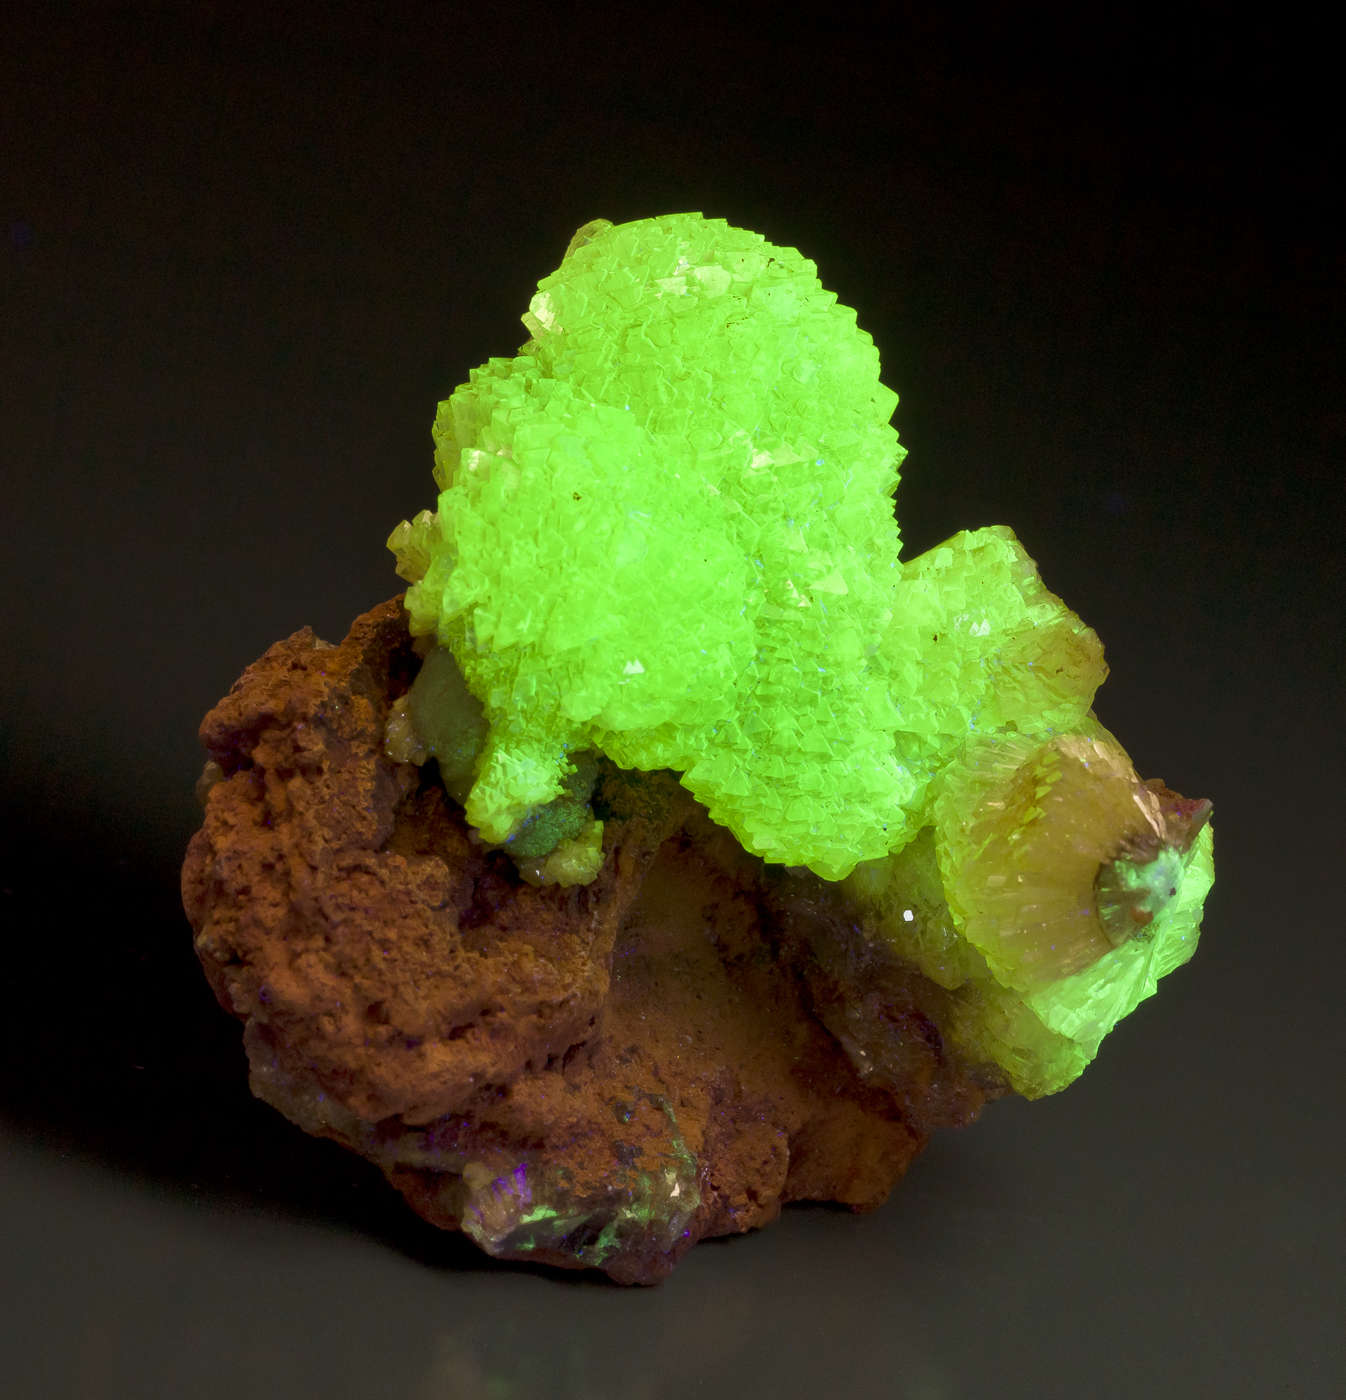 I owned adamite early 1990s happy turn instantly remembered